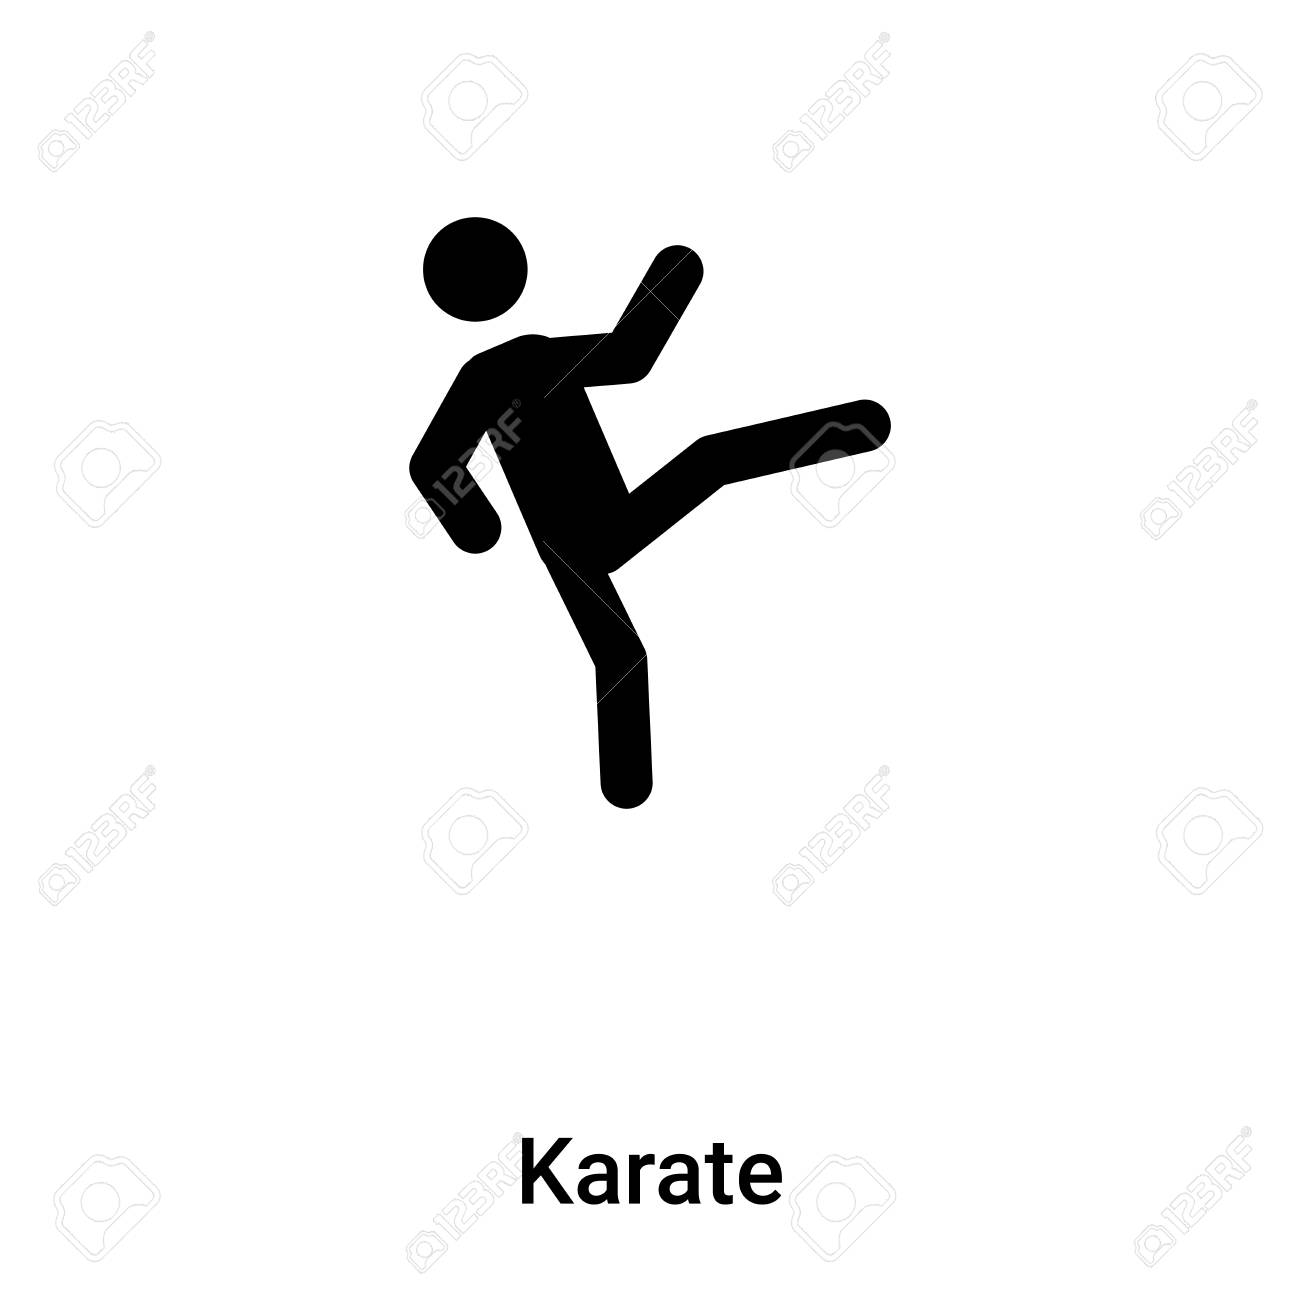 Karate Icon Vector Isolated On White Background Filled Black